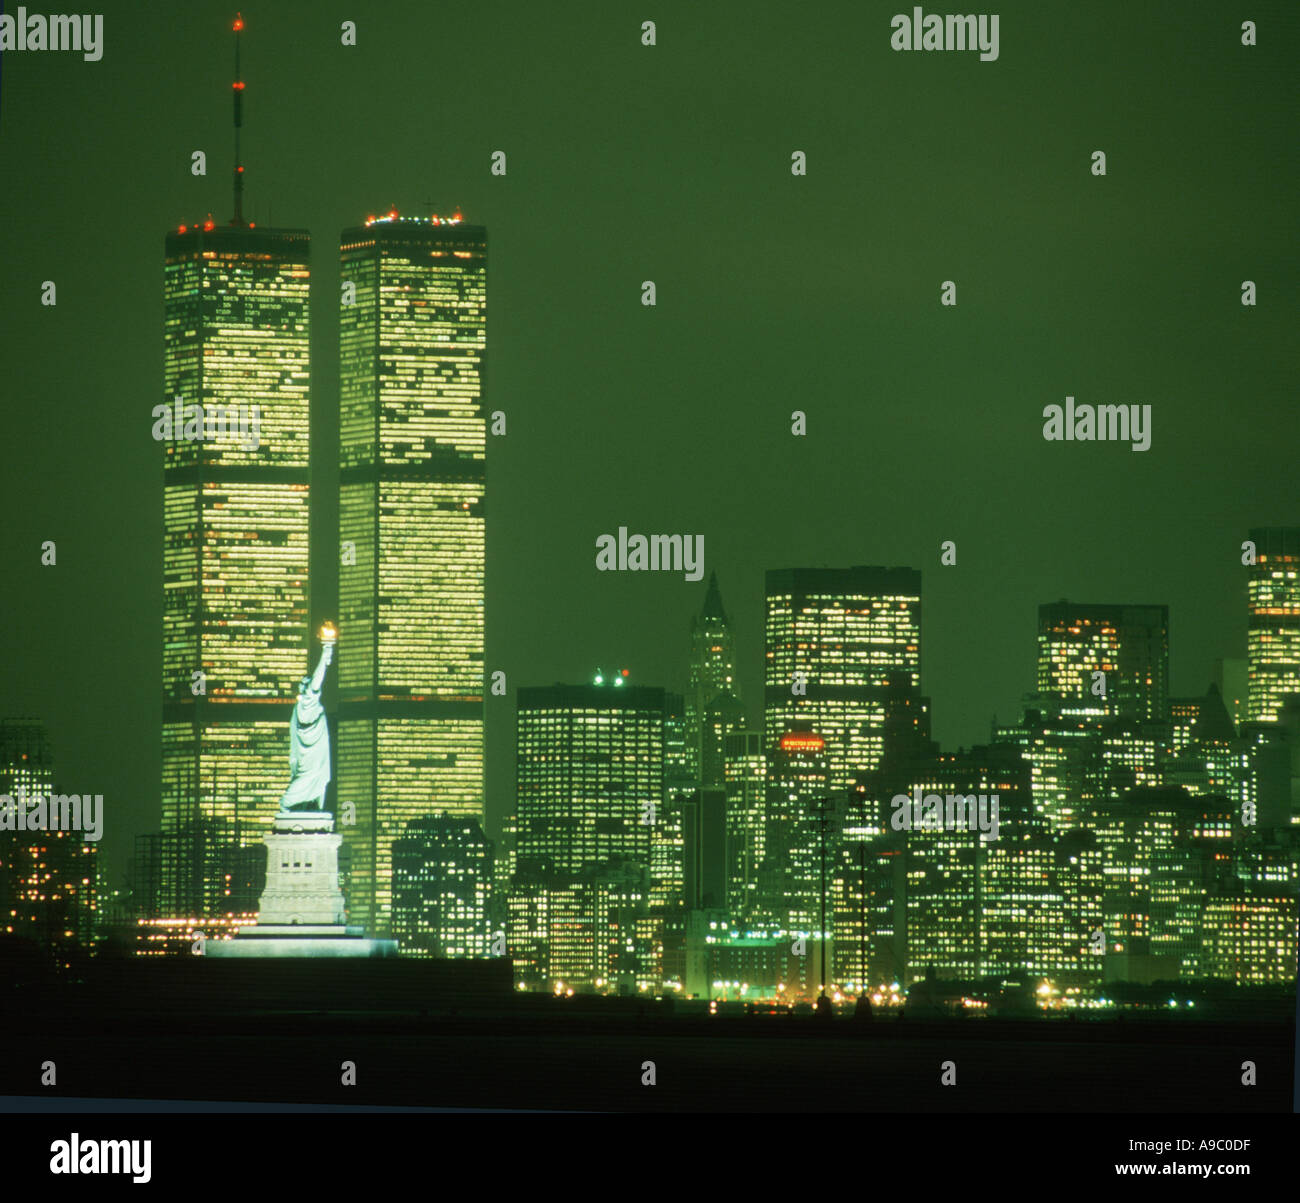 Lower Manhattan New York City at night prior to September 11 2001 showing World Trade Center Towers - Stock Image